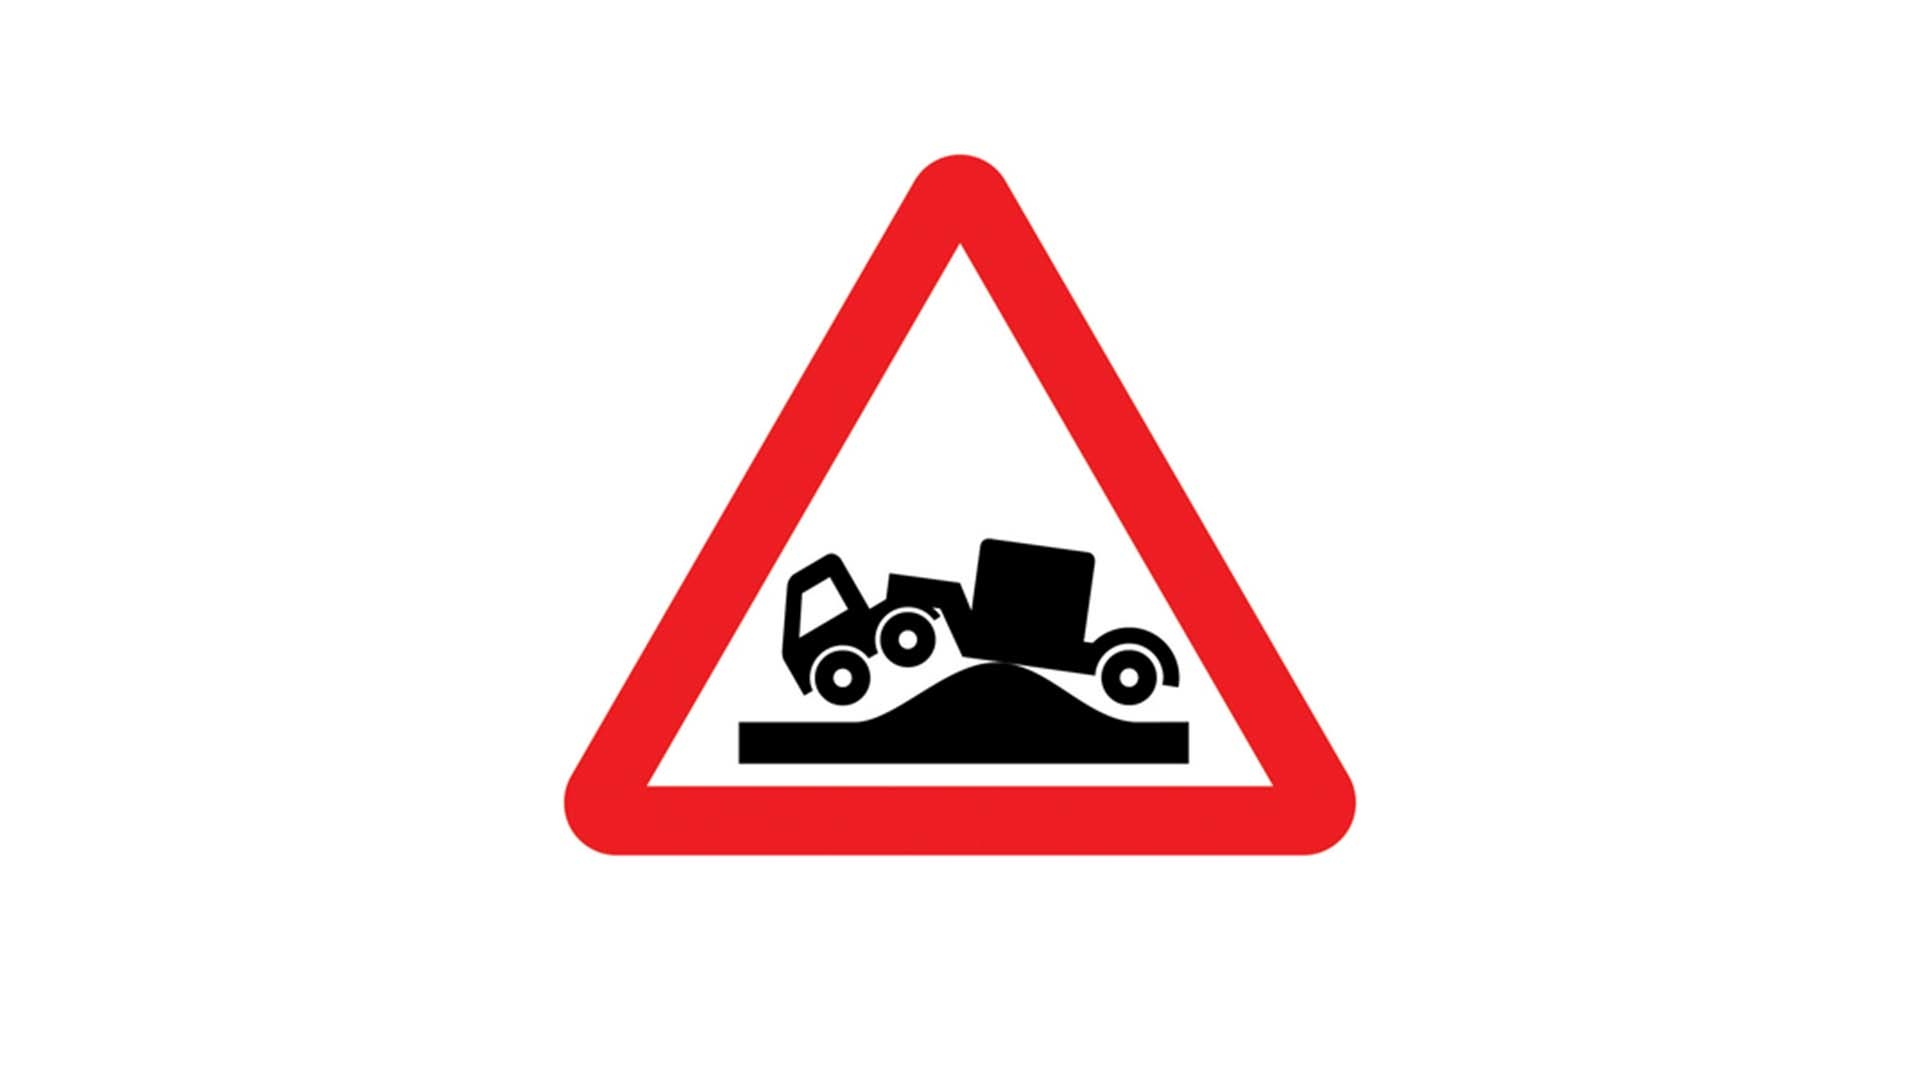 Risk of grounding road sign